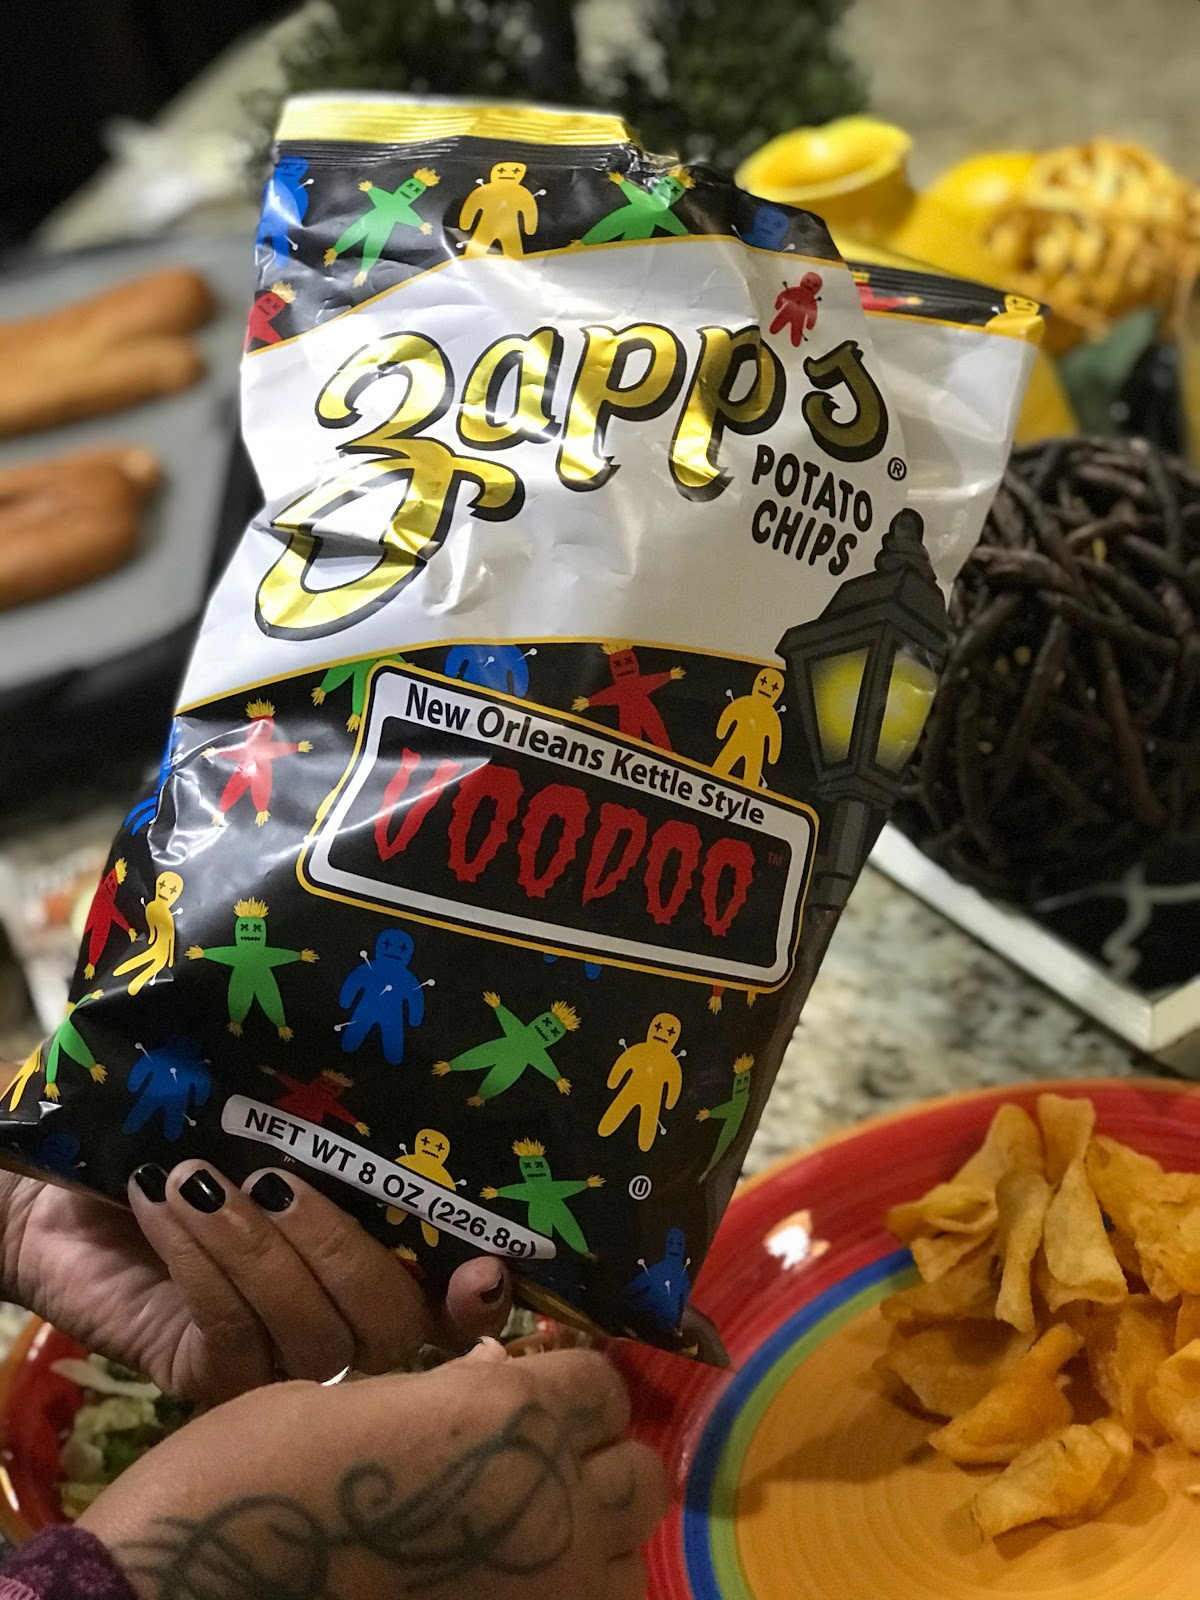 Using Zapps Voodoo chips to pair with Shrimp Po Boys